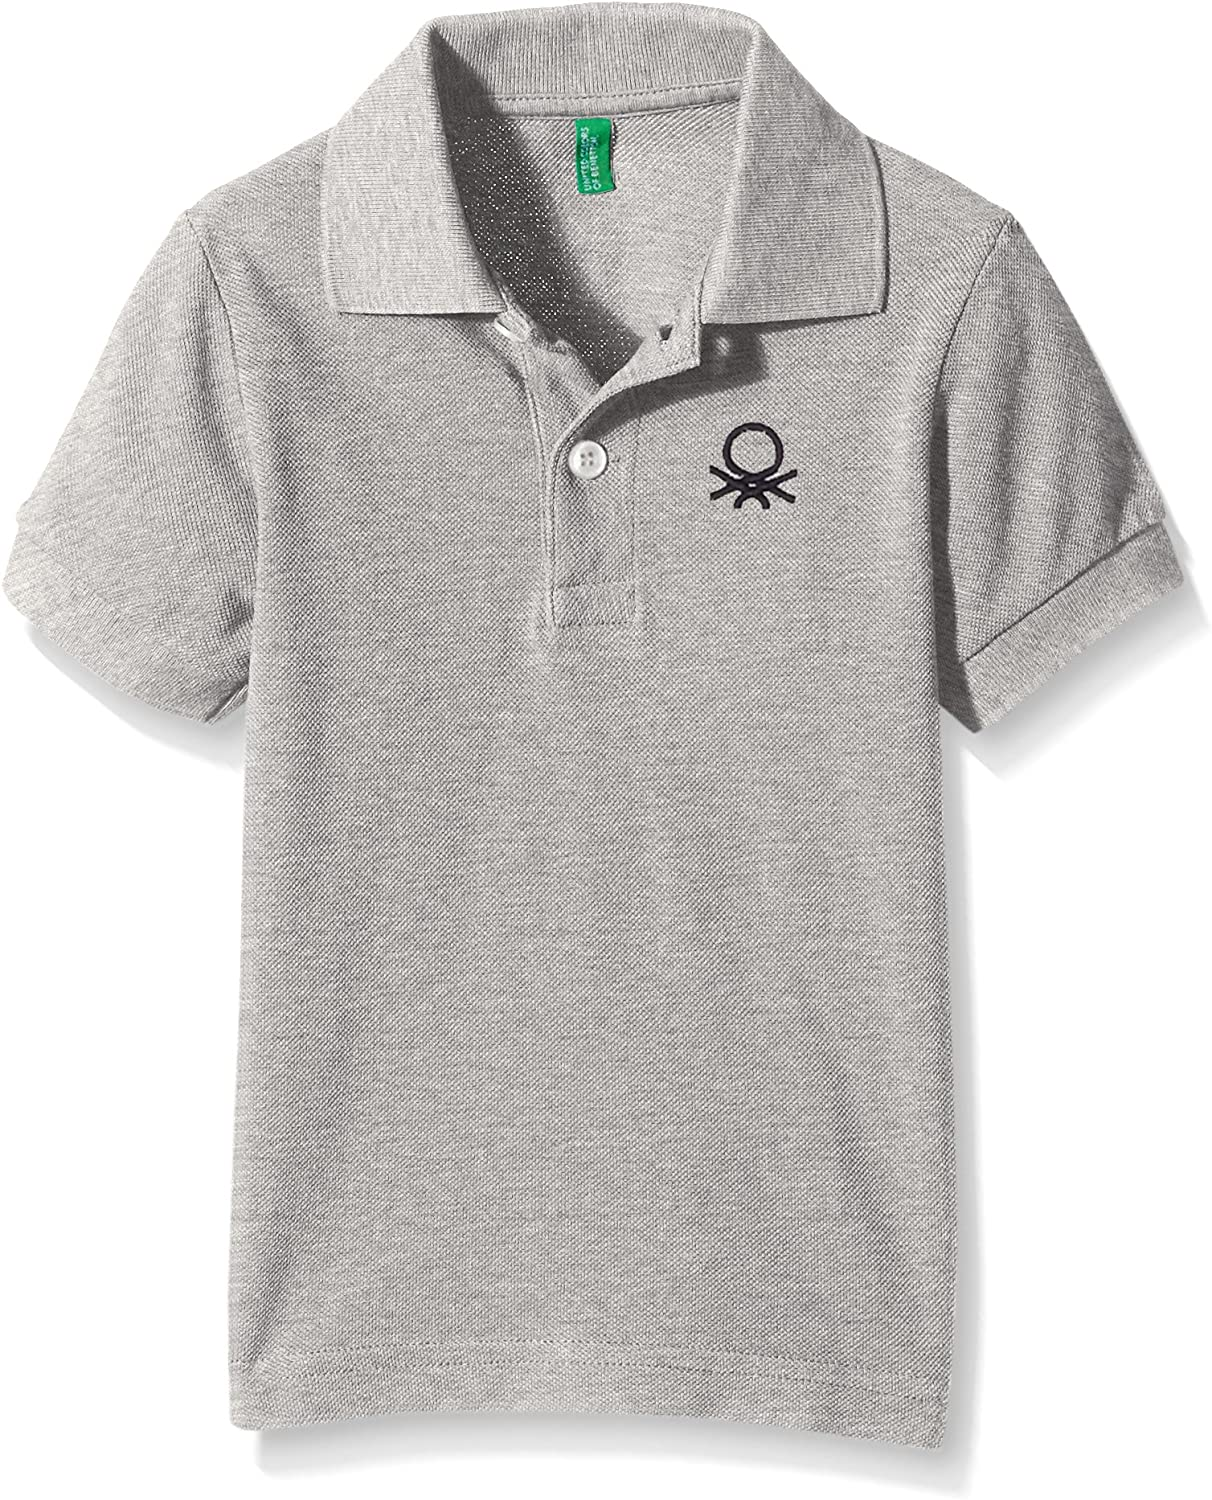 United Colors of Benetton 3089C3303, Polo para Niños, Gris (Light ...